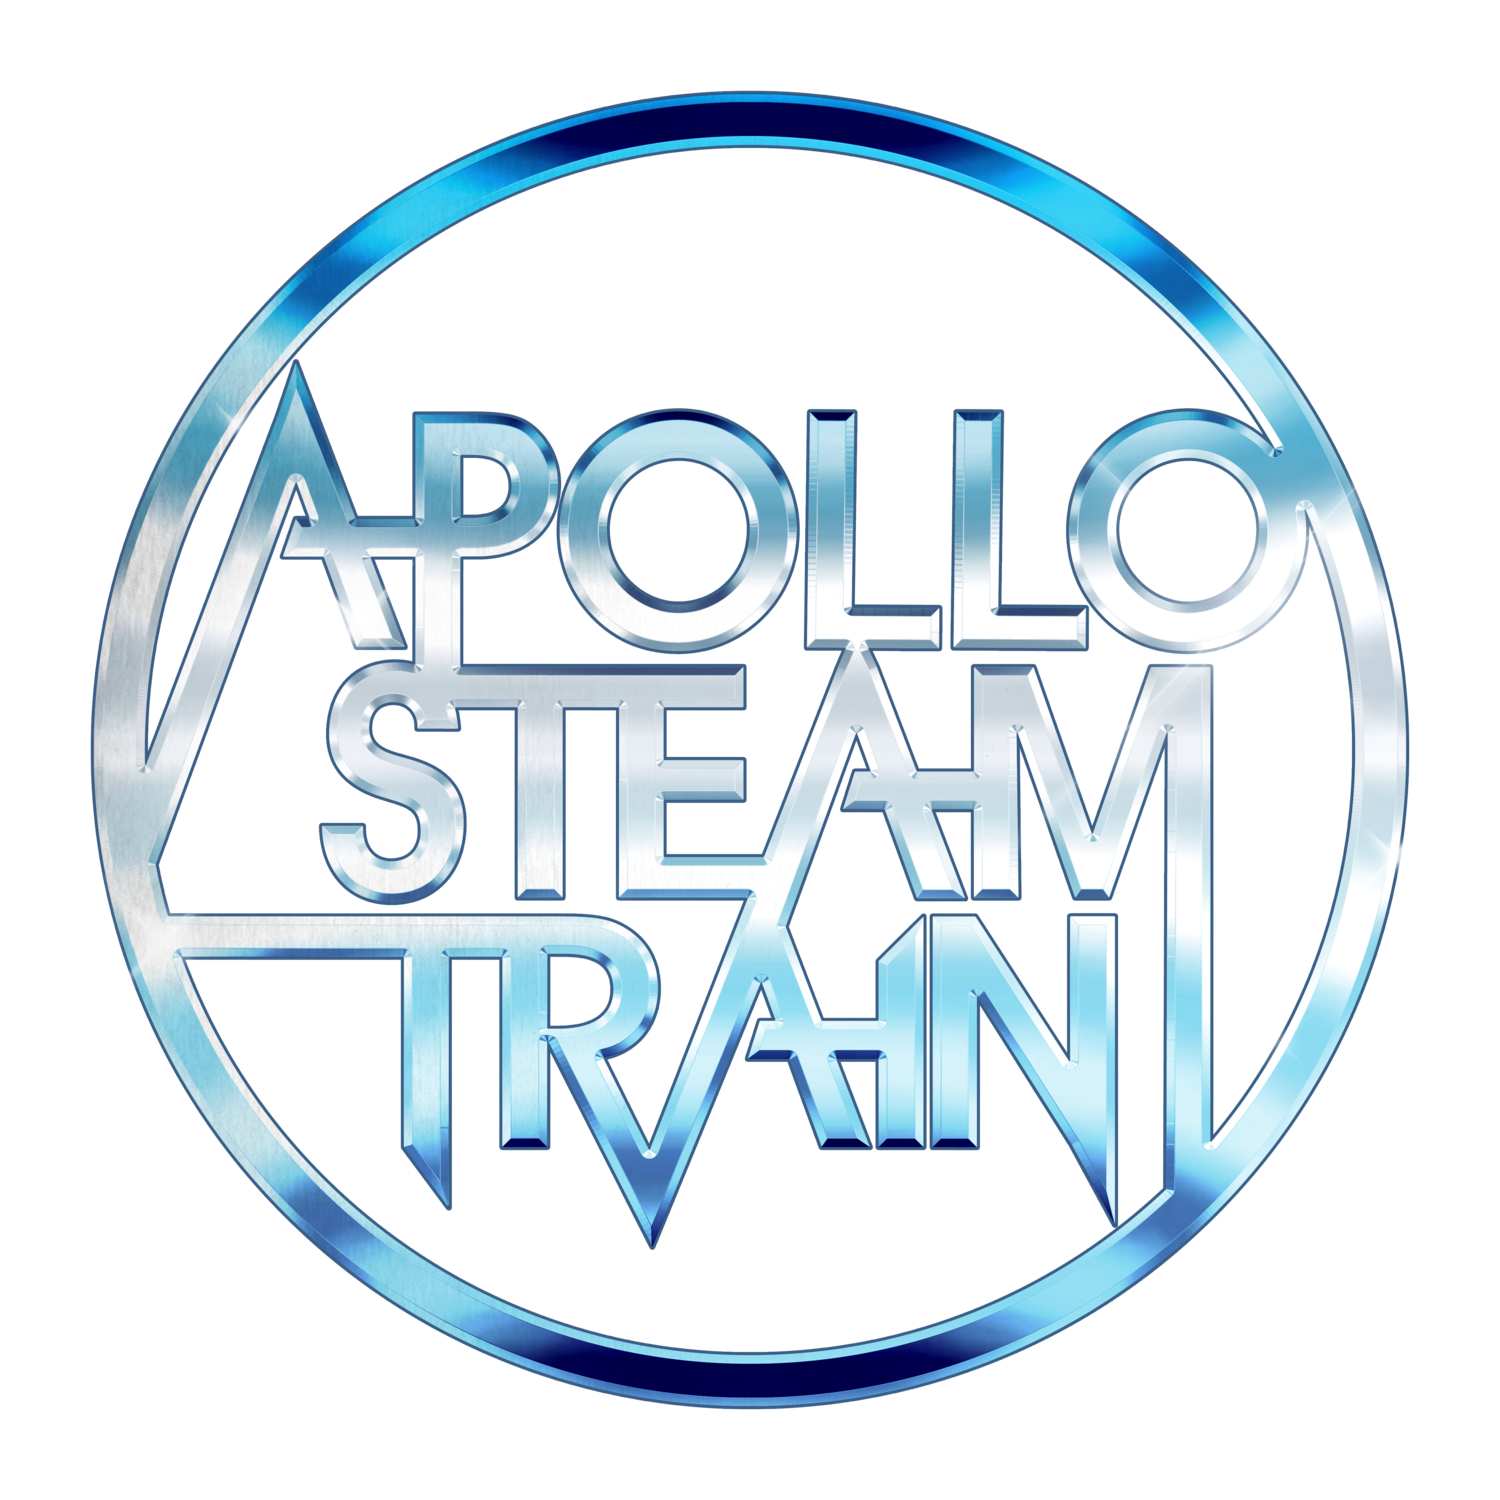 Apollo SteamTrain